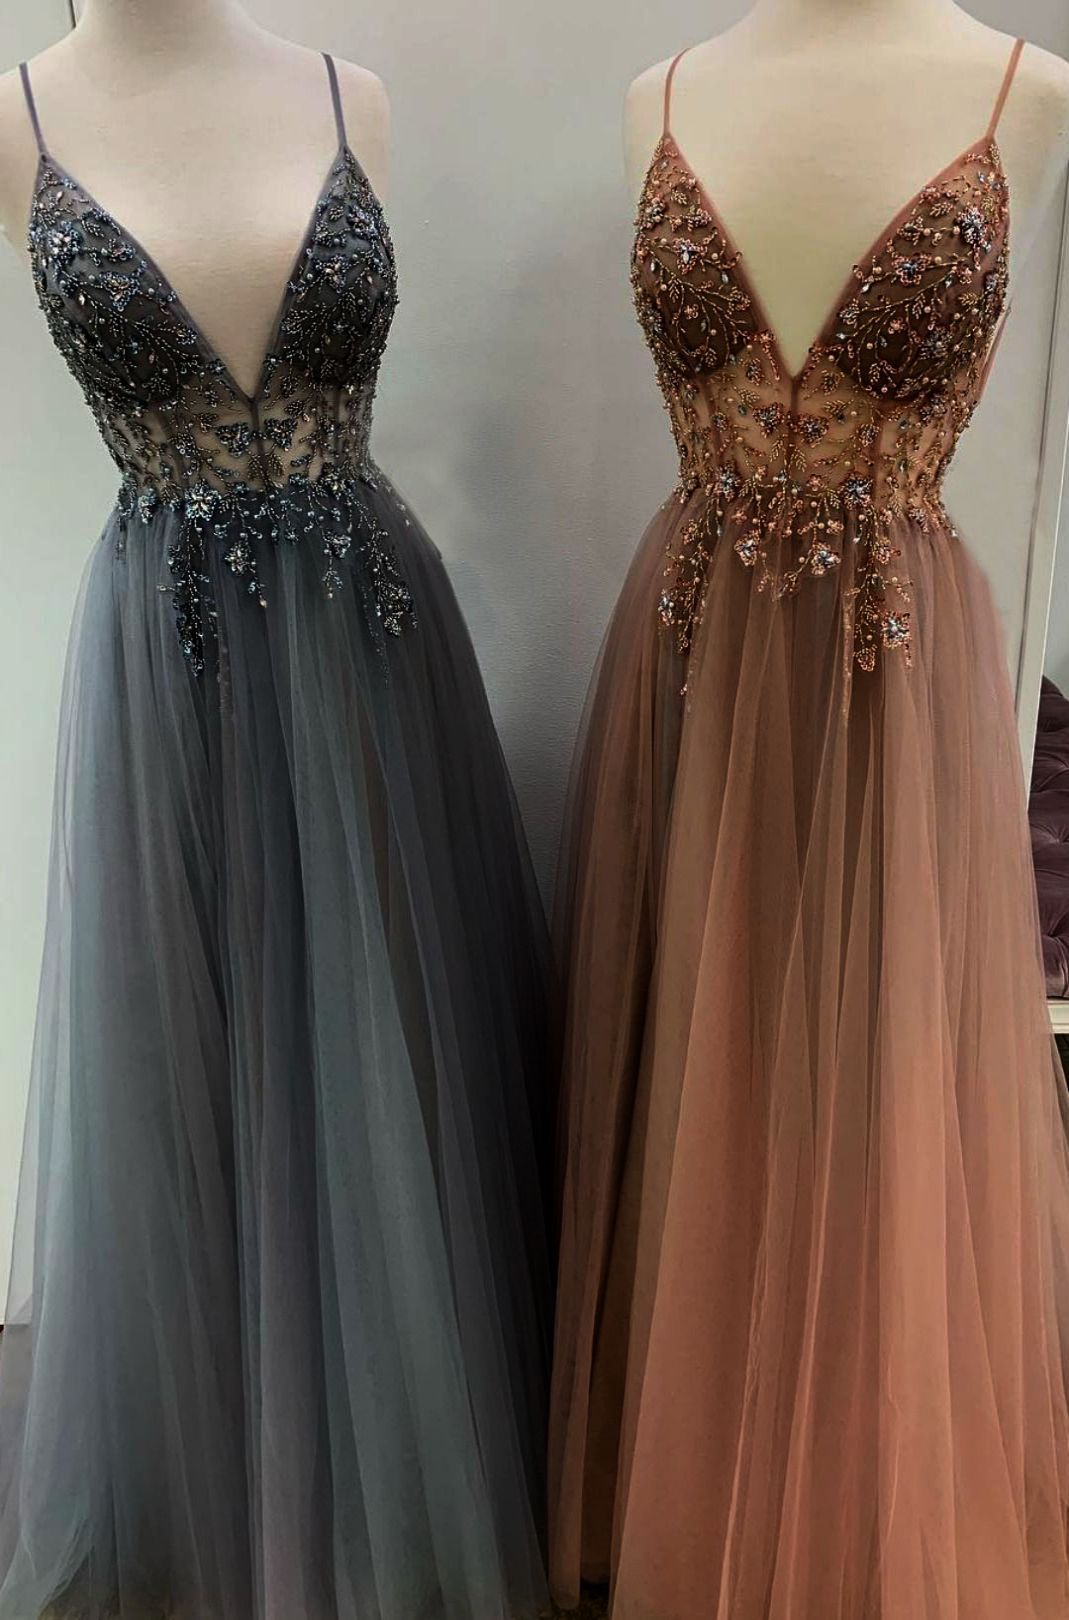 Long Sleeve Ladies Evening Dresses at Evening Dresses Long Tall